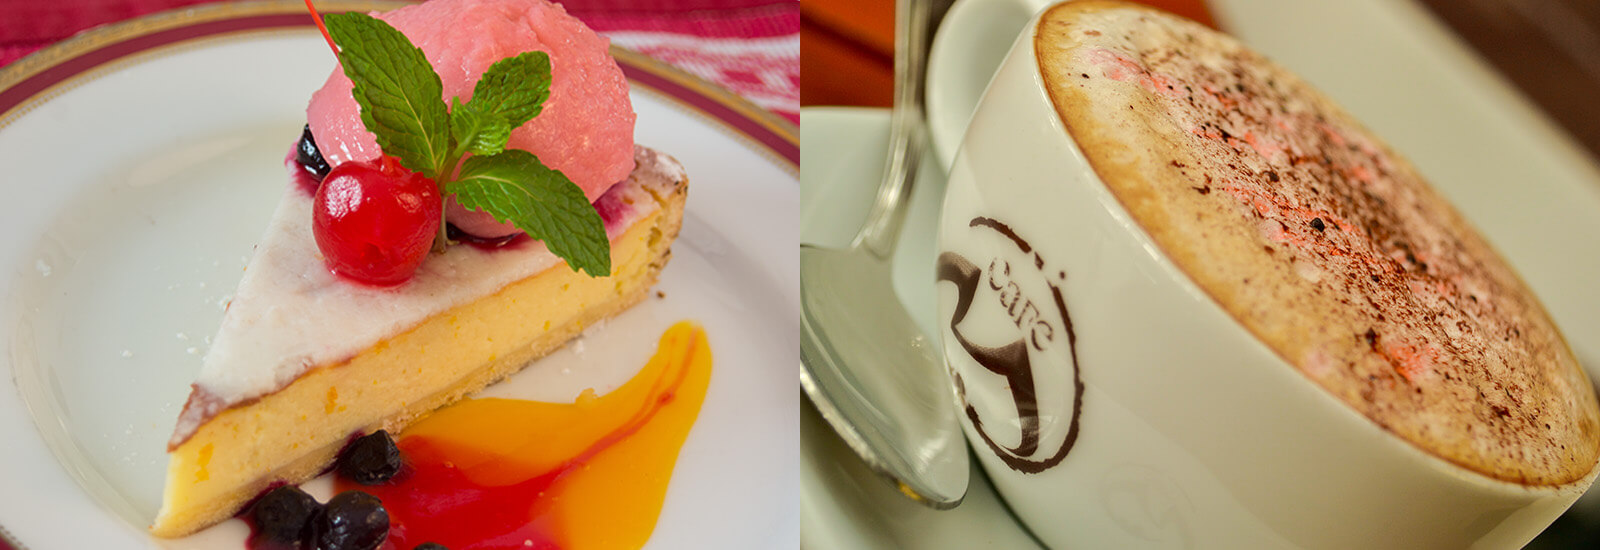 Coffee and Desserts at Cafe M in Mahaweli Reach Hotel Kandy